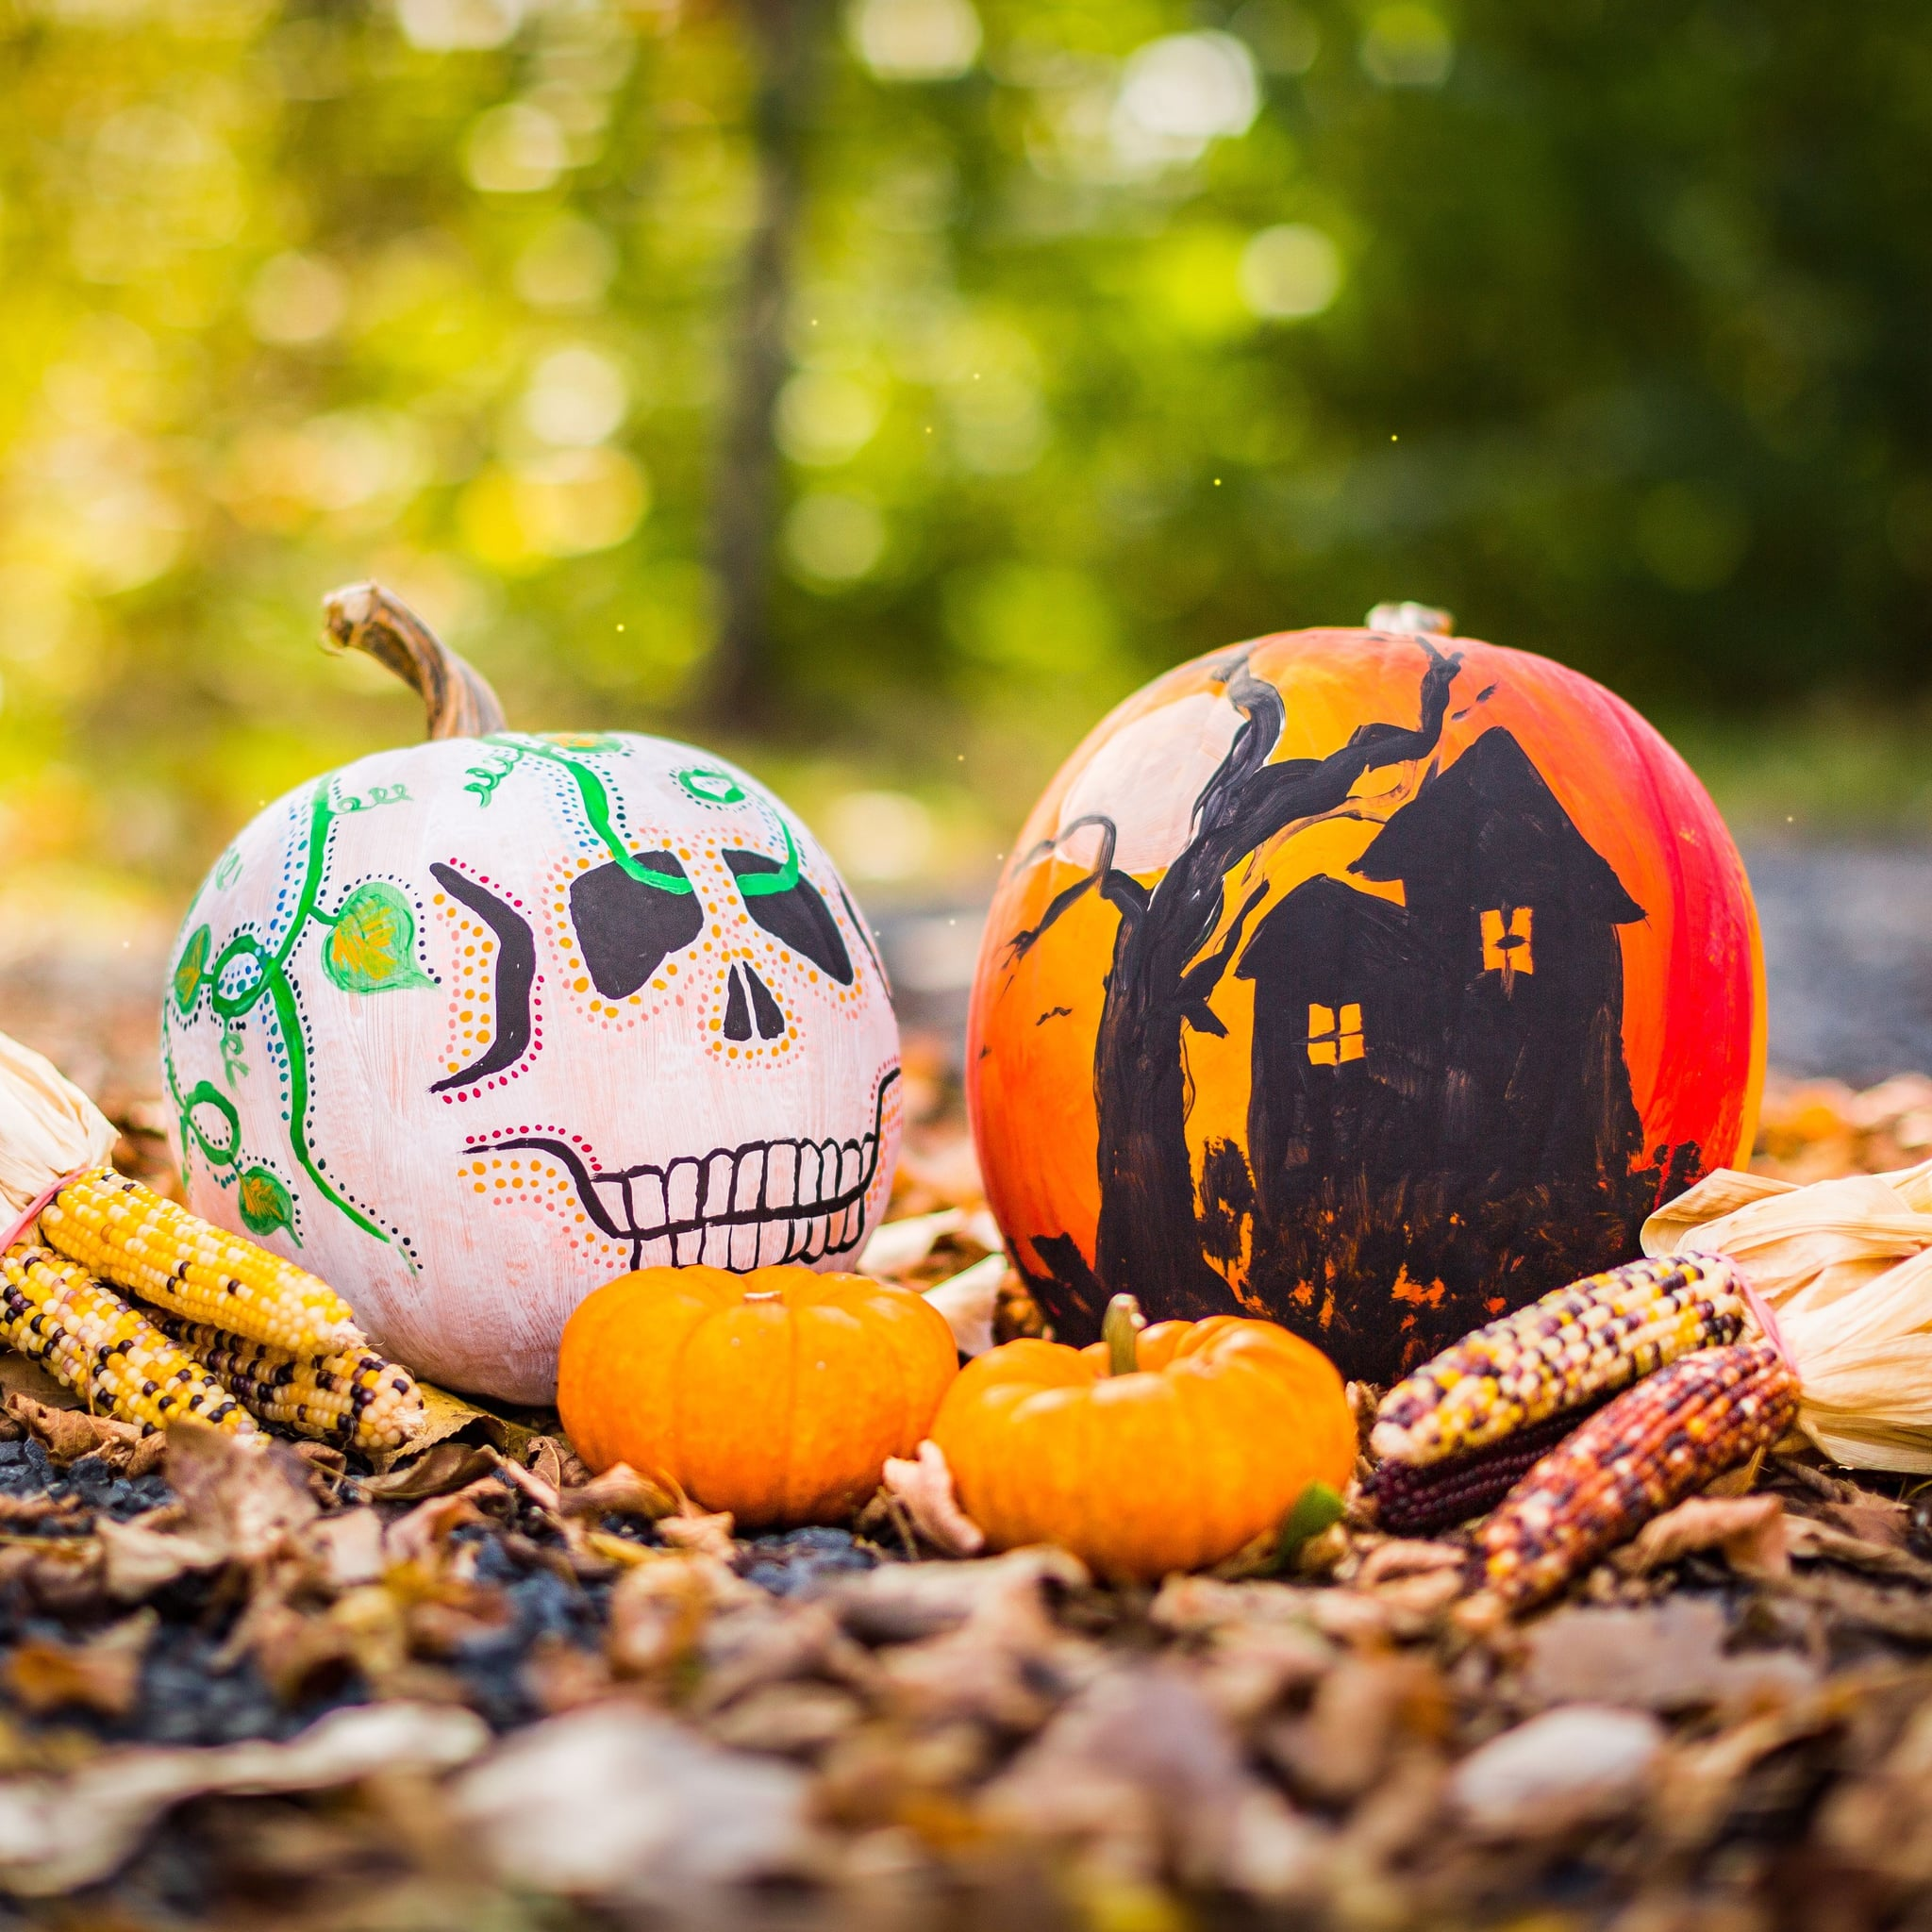 cheap things to do on halloween | popsugar smart living